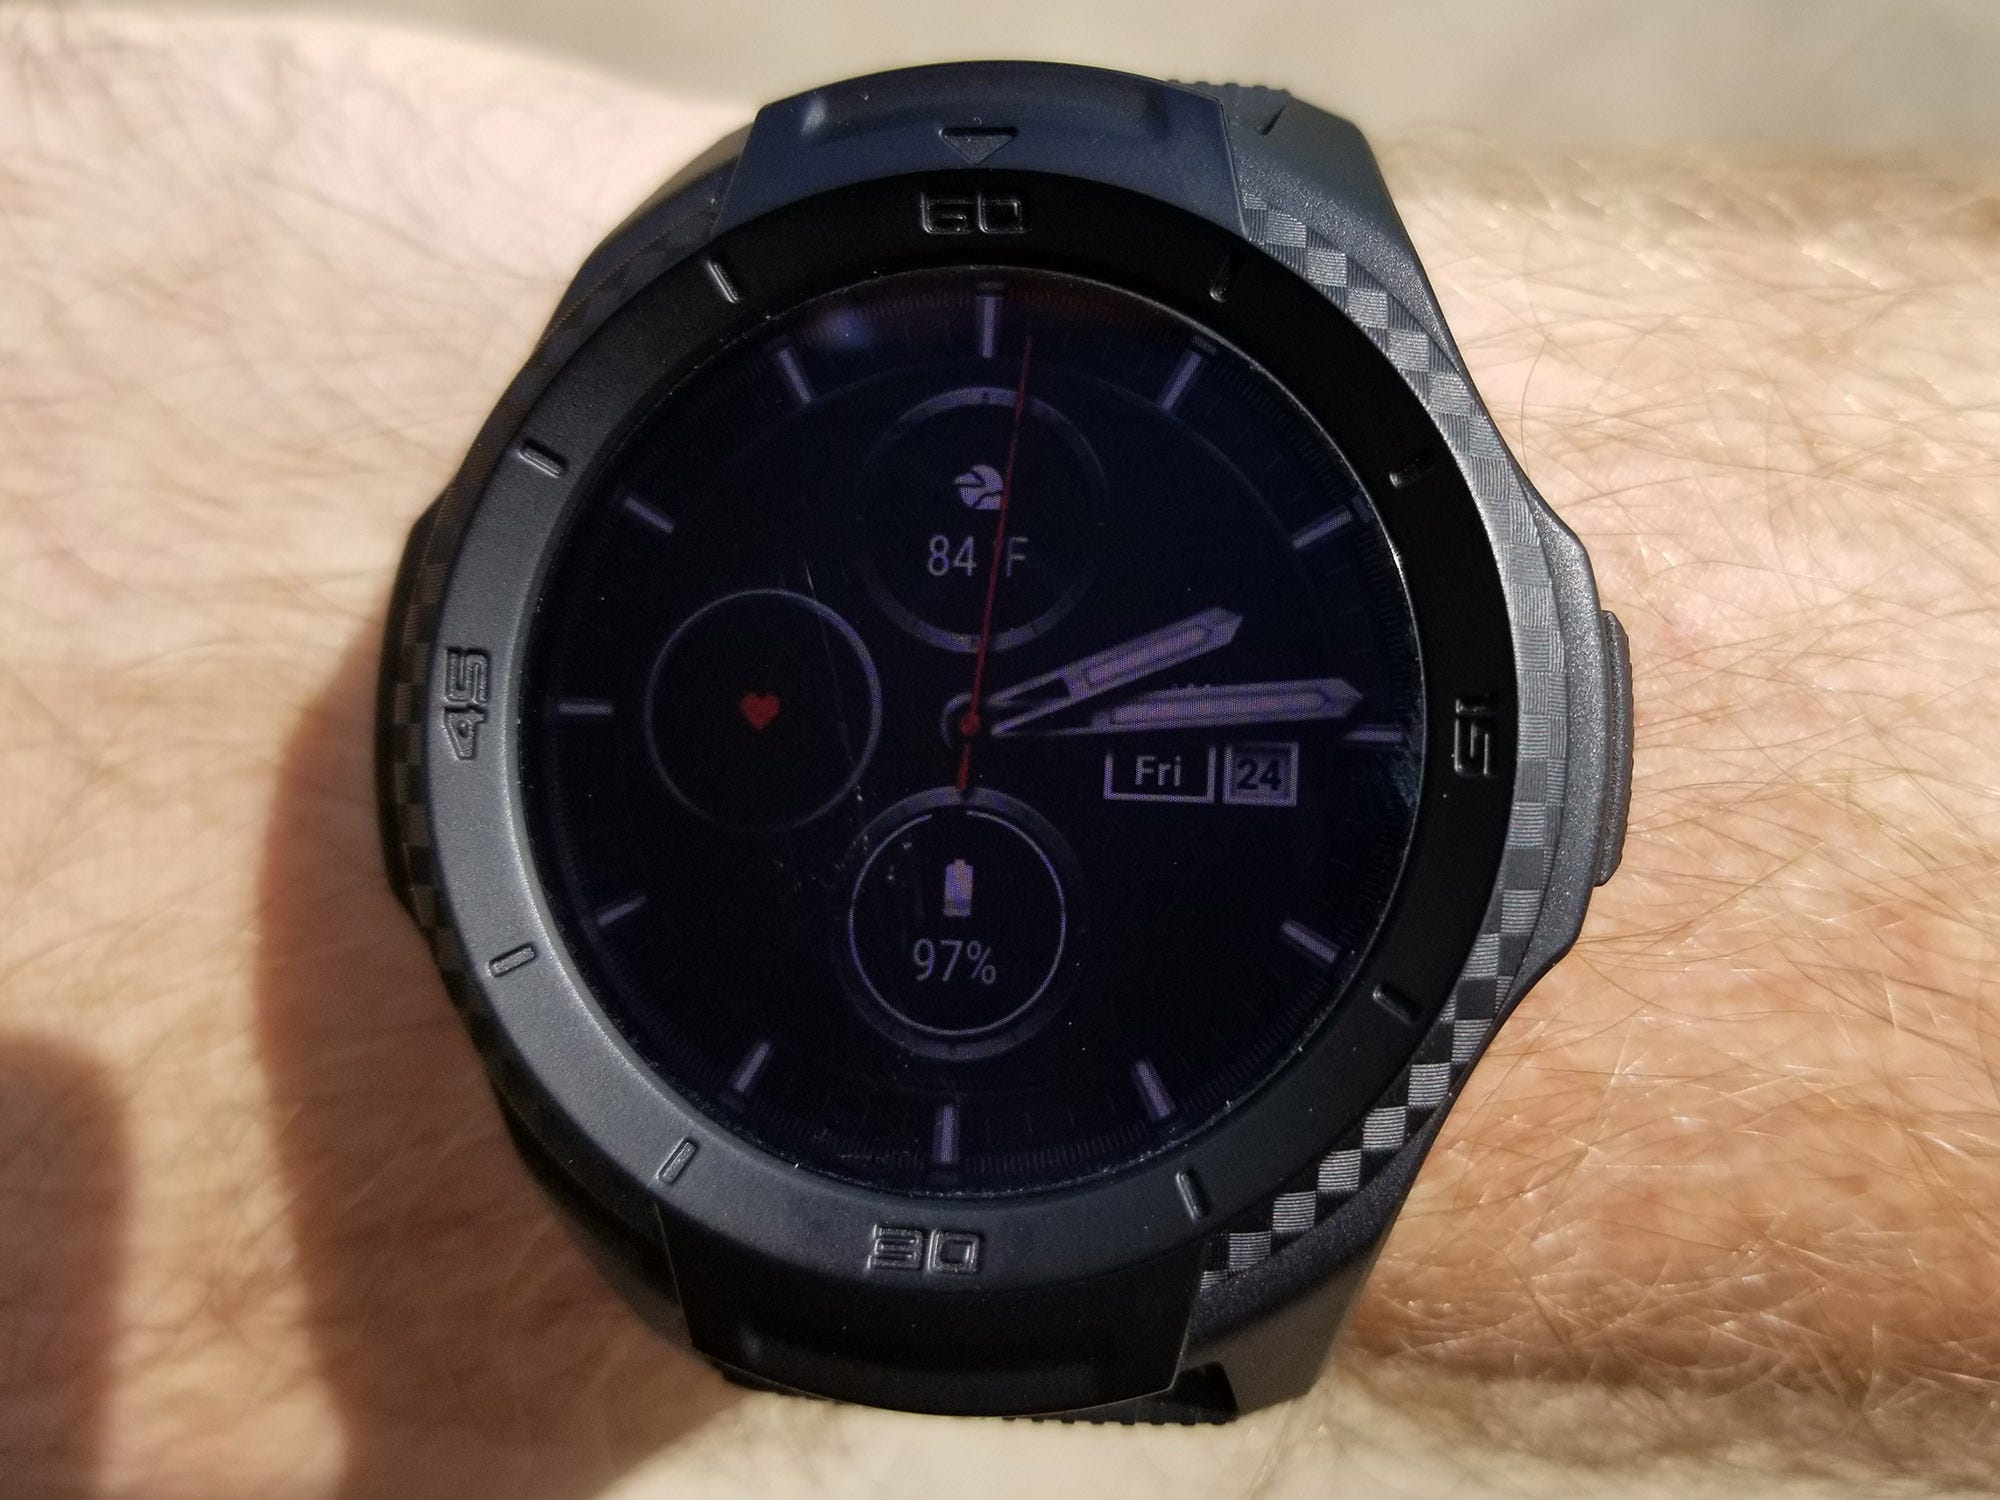 In direct sunlight the TicWatch S2's OLED screen is a little hard to see.